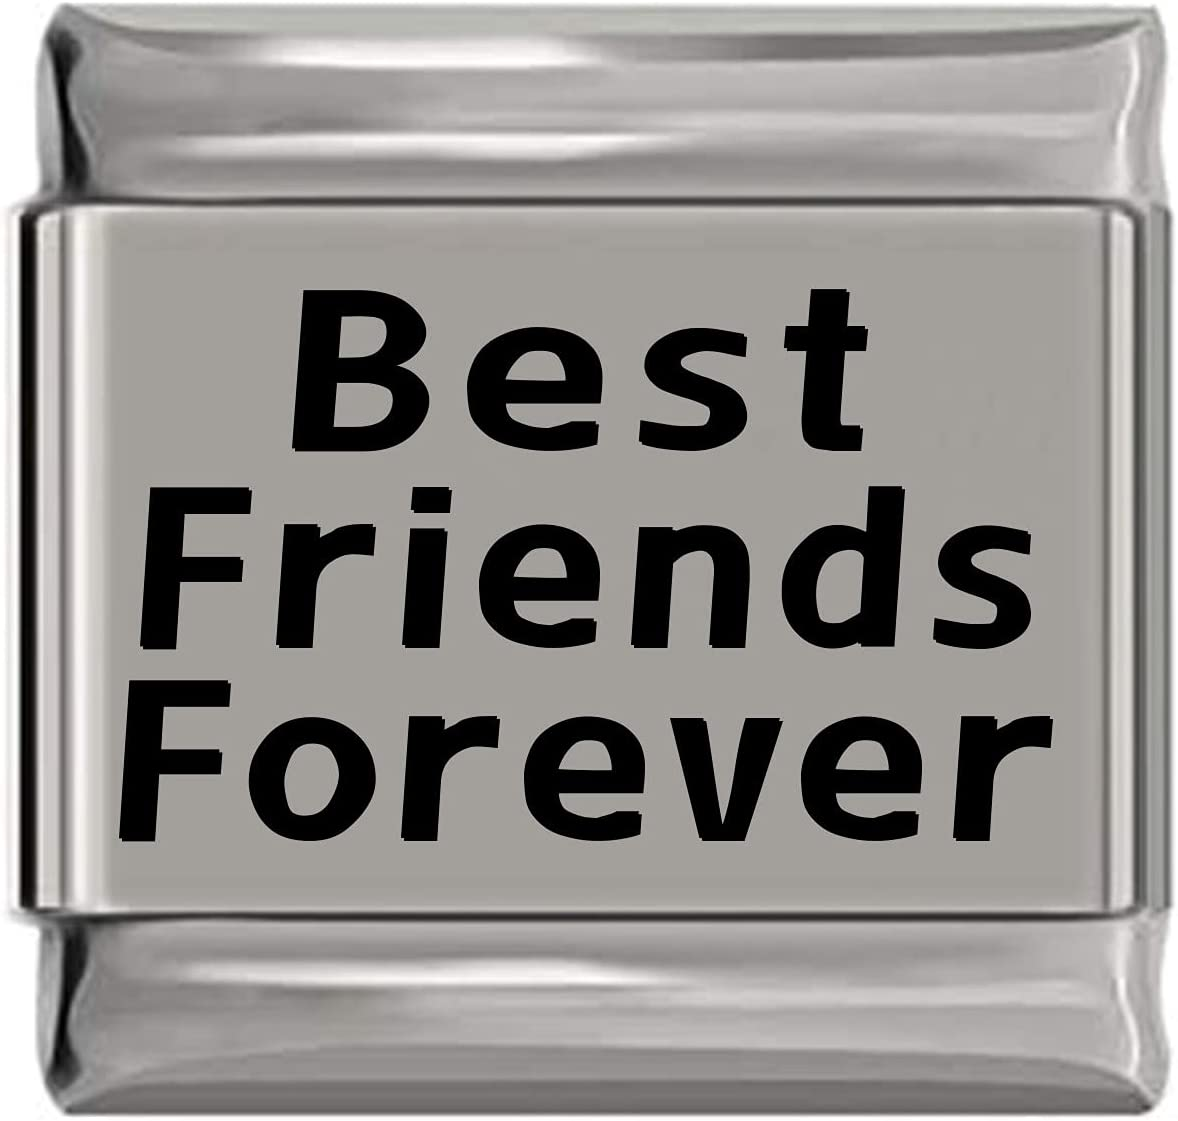 Nippon regular agency Best Friends Forever High quality new Laser Charm Italian Engraved